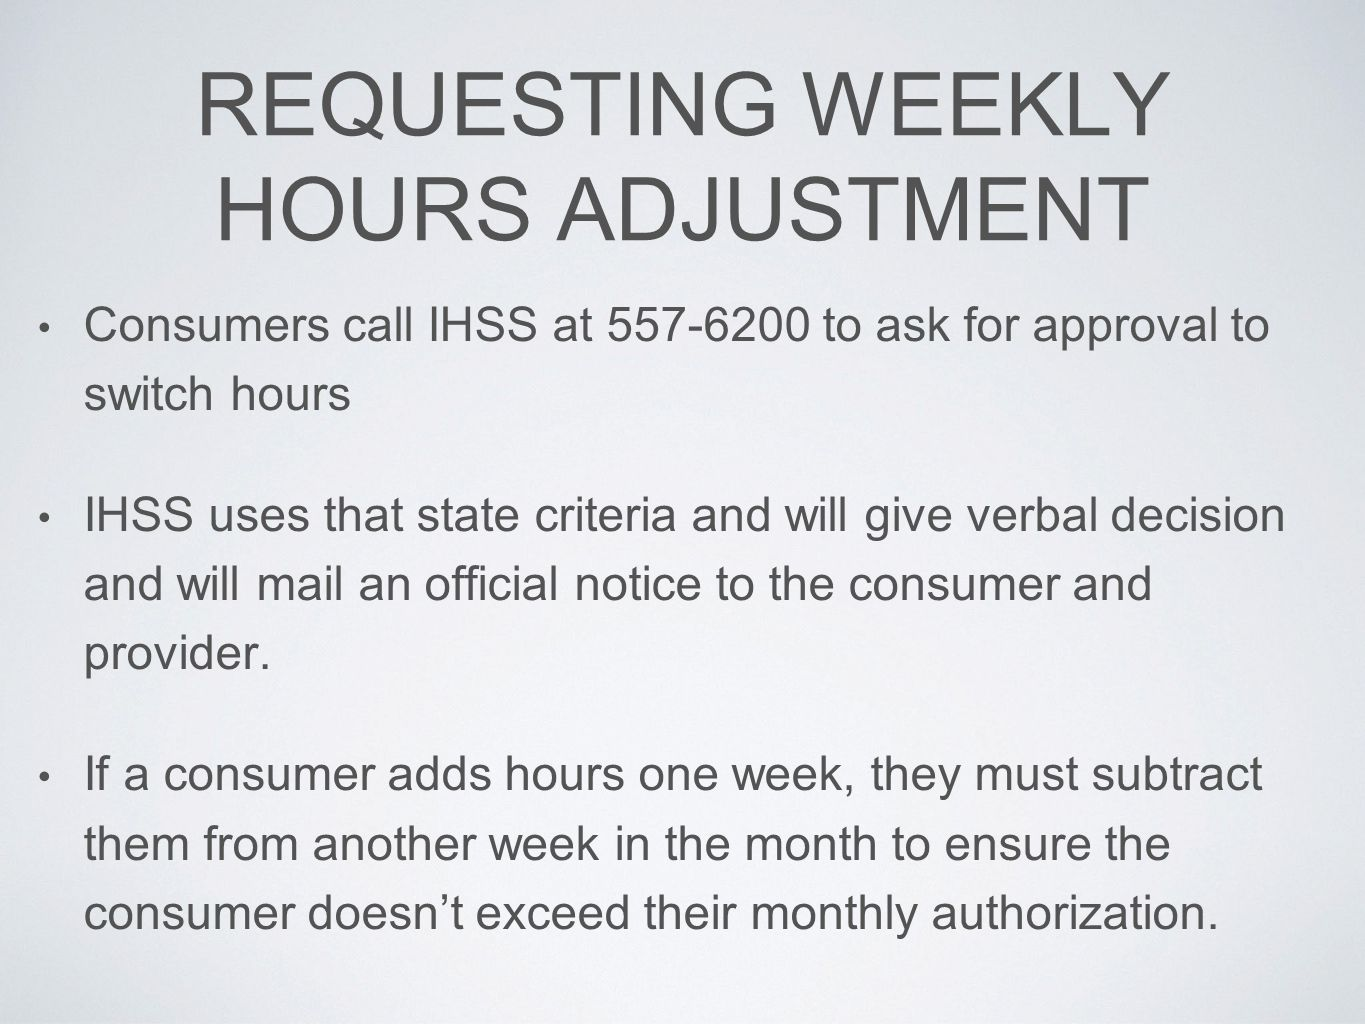 REQUESTING WEEKLY HOURS ADJUSTMENT